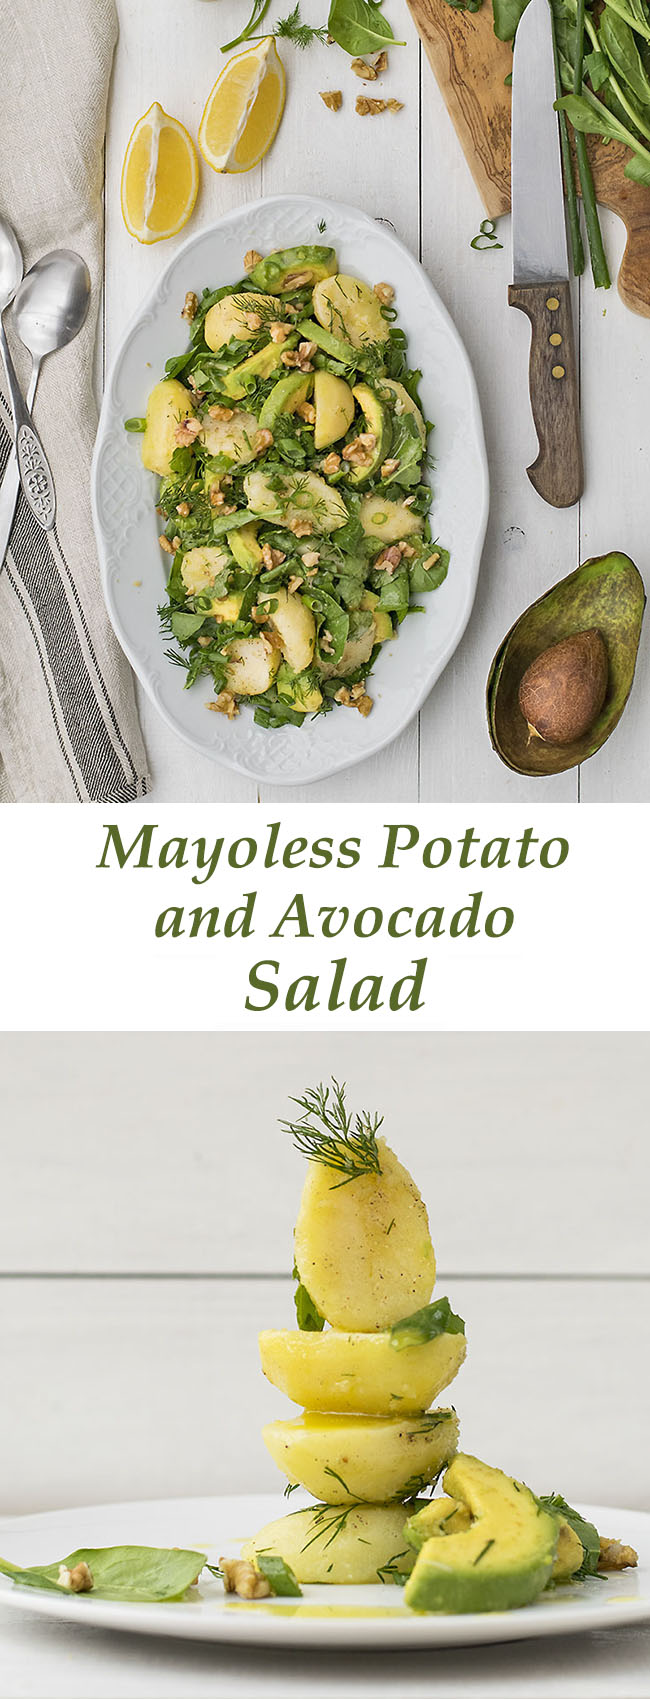 Mayoless potato and avocado salad